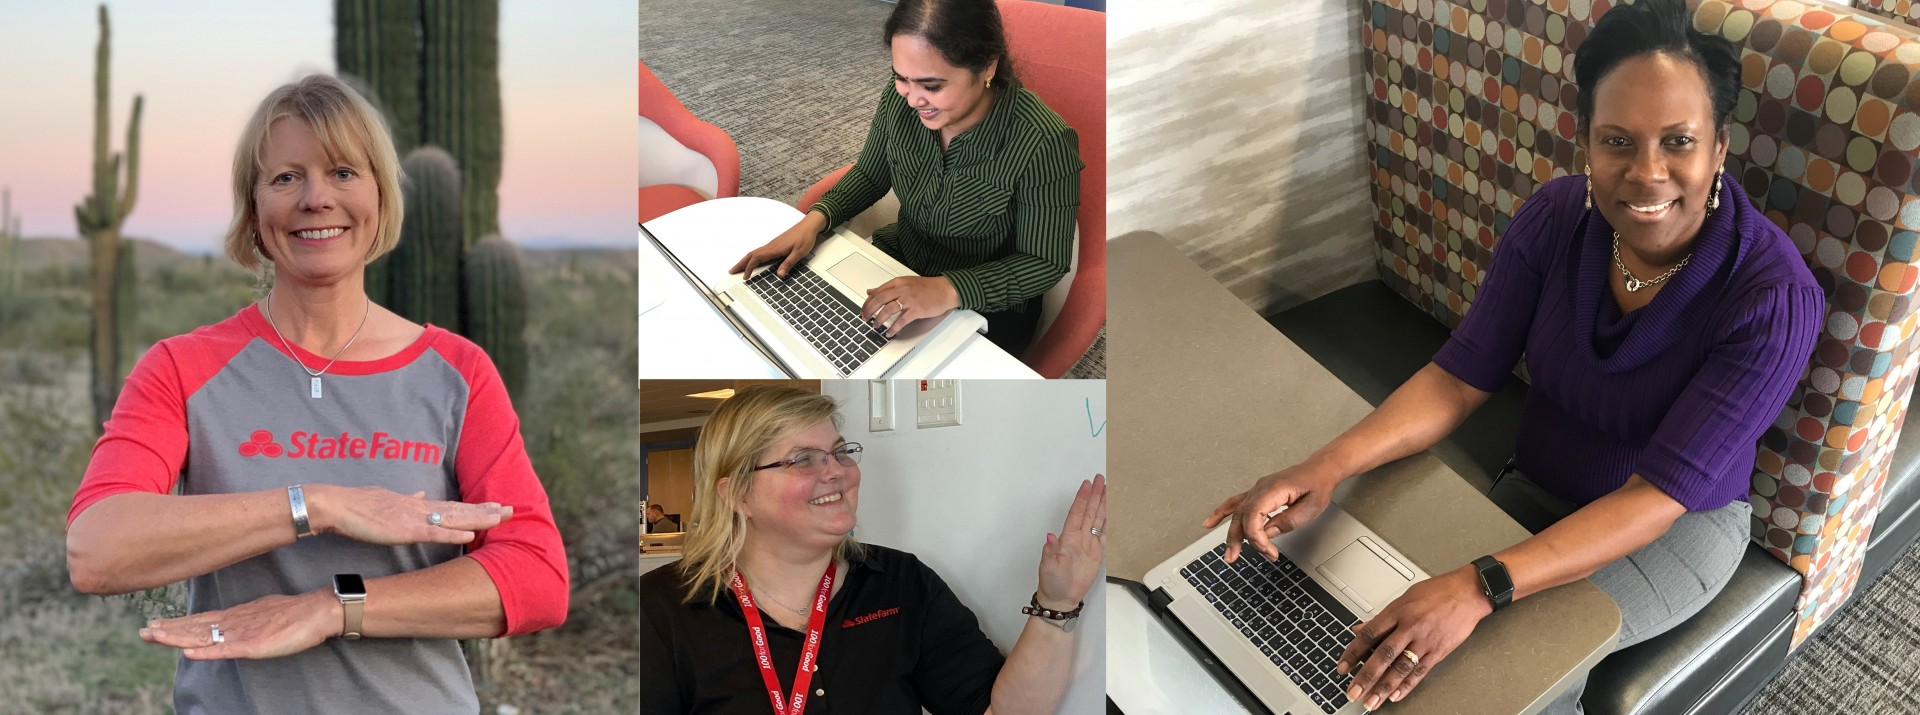 State Farm women in tech